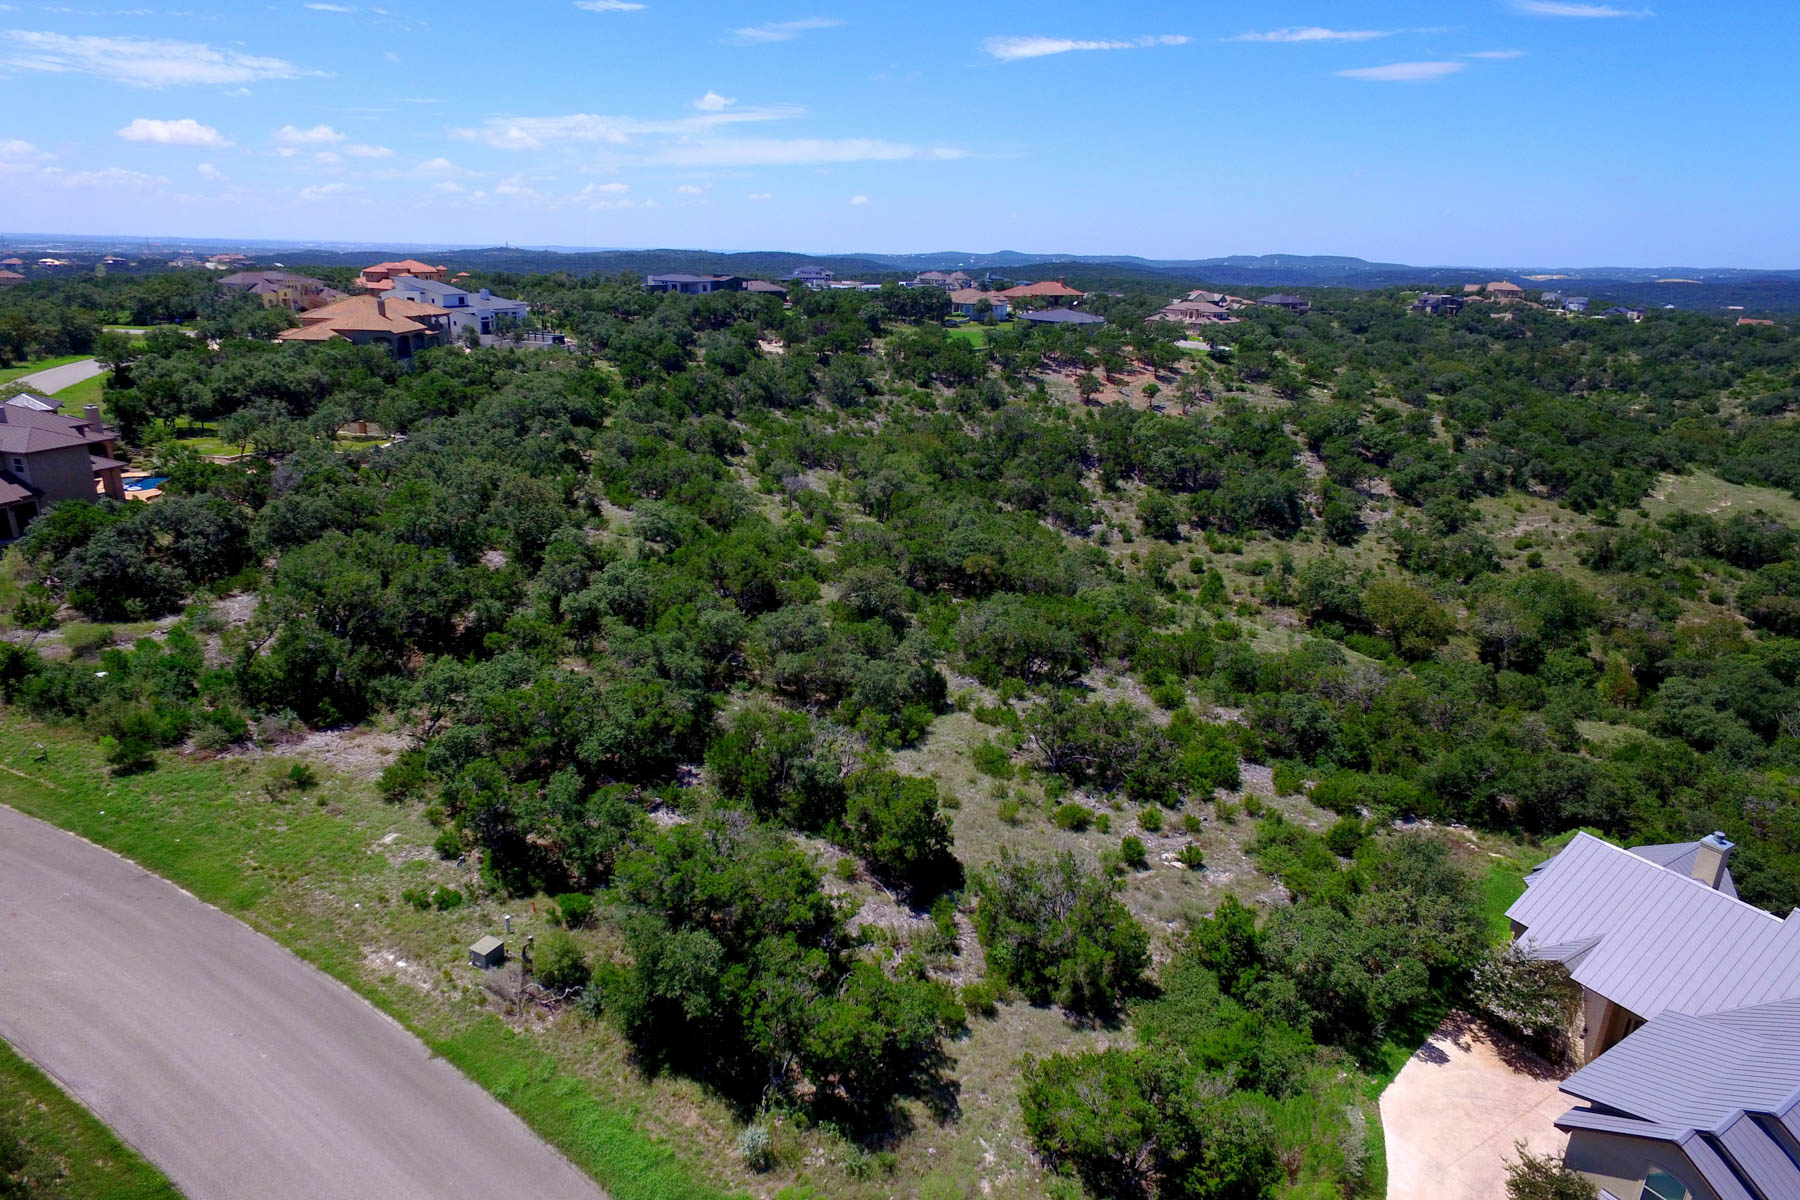 Land for Sale at Luxury Country Living Close to the City 19415 Terra Stone San Antonio, Texas 78255 United States